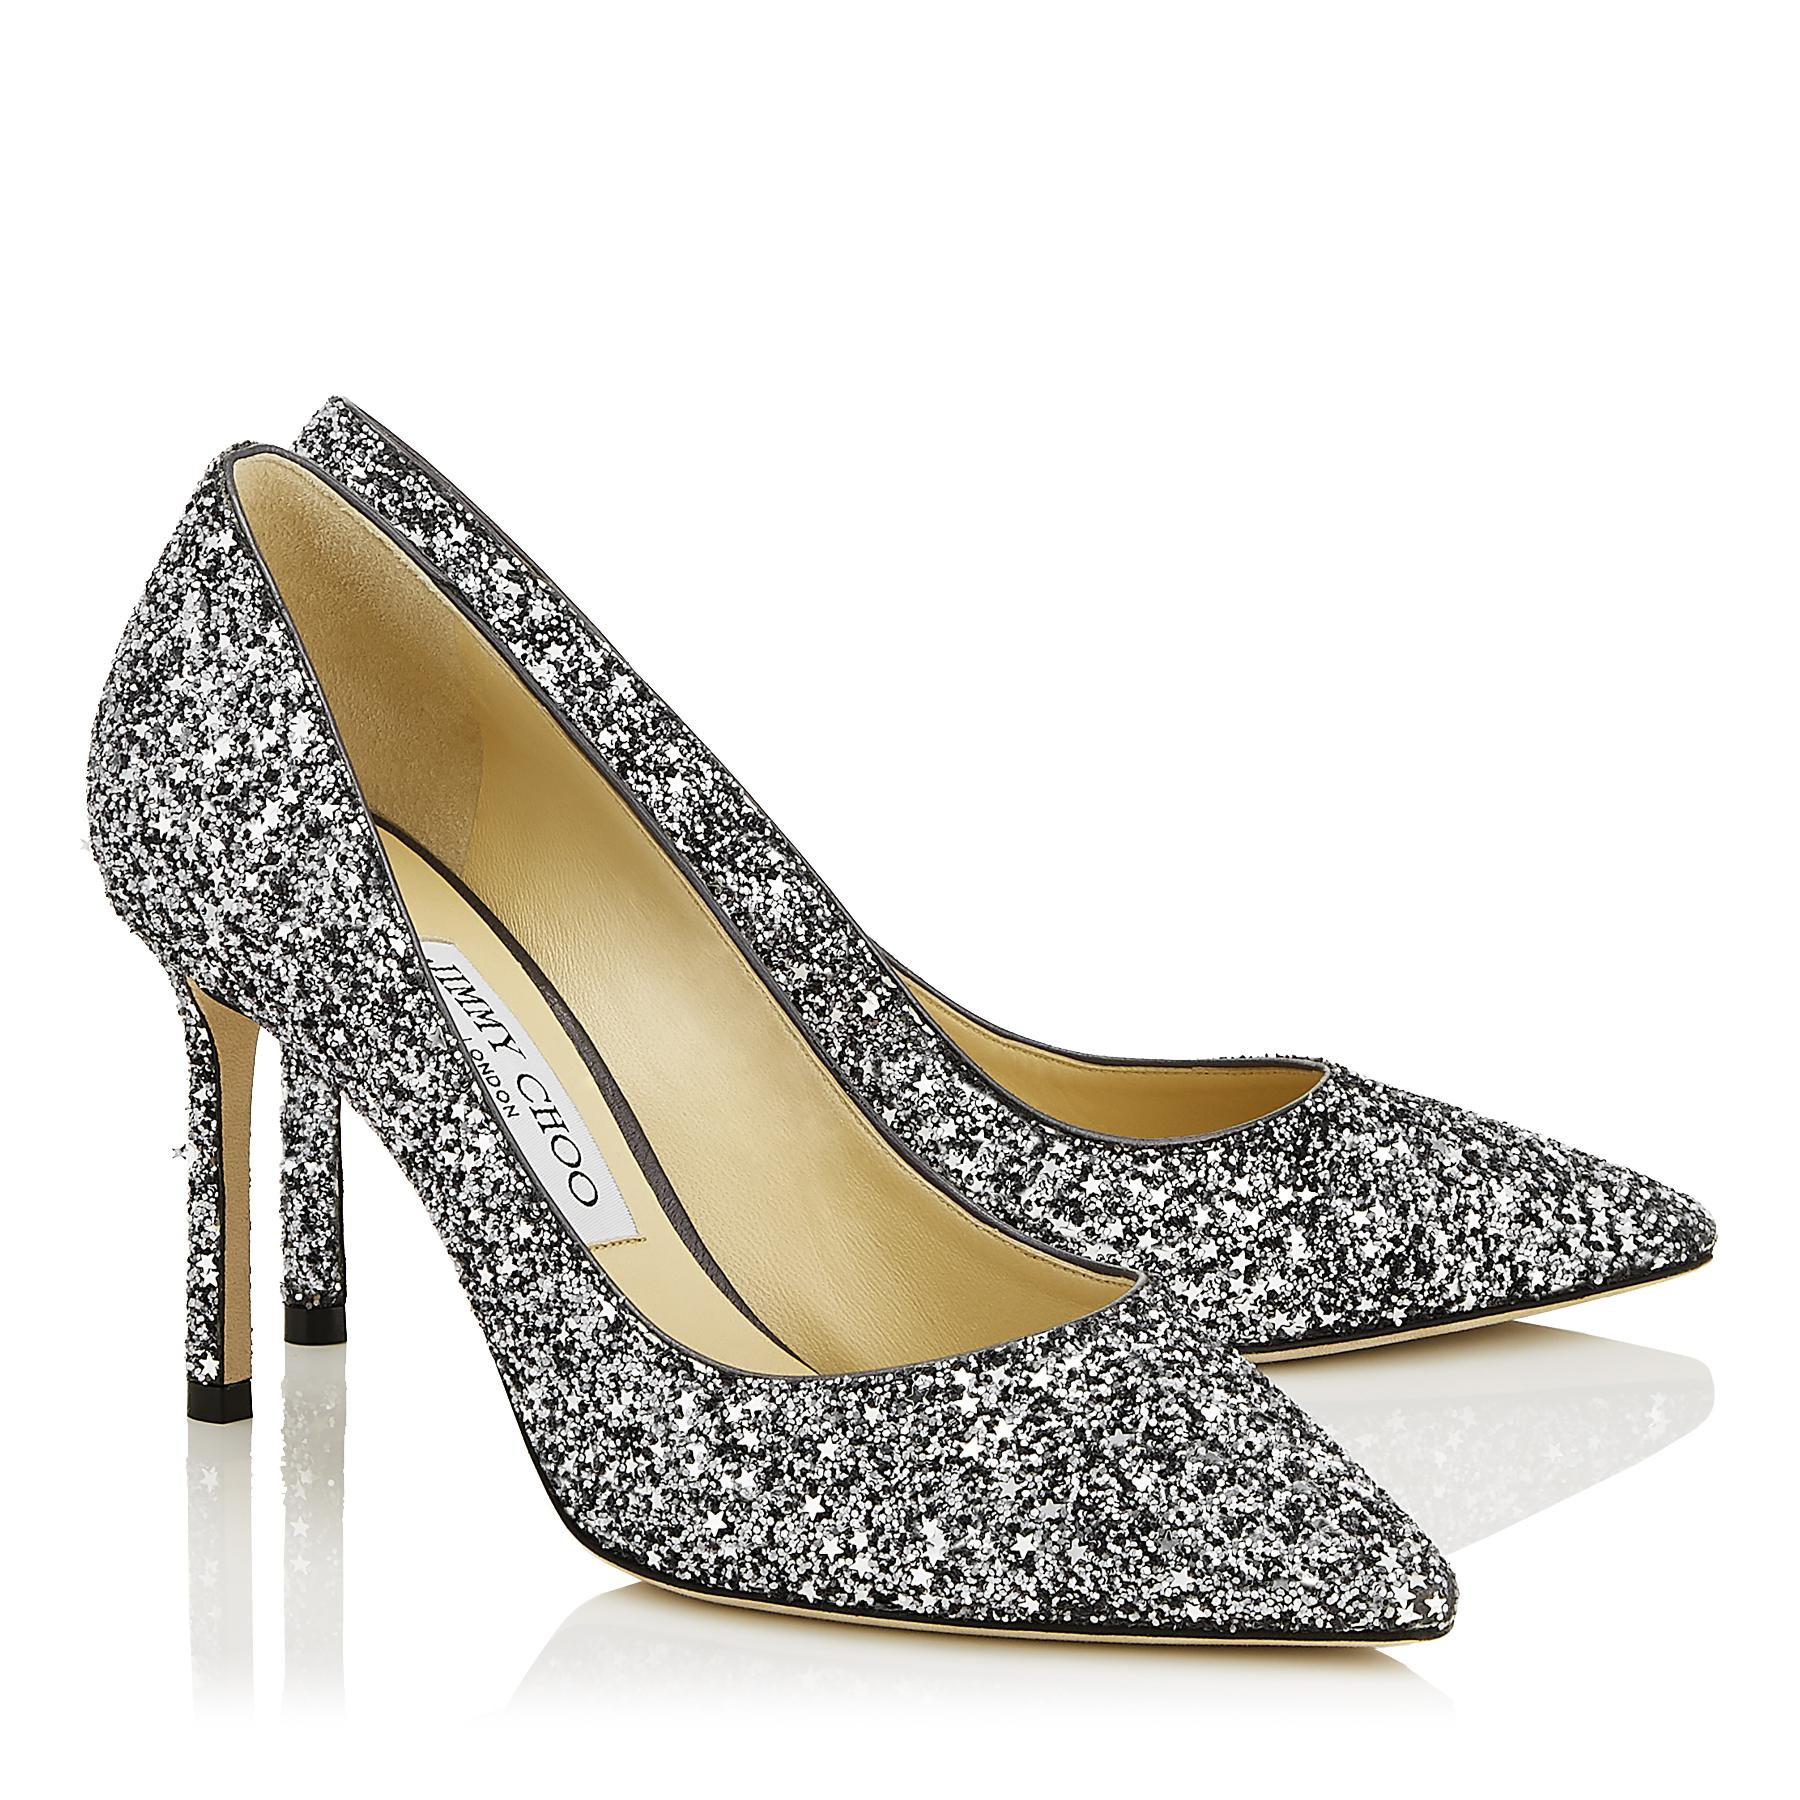 dc015a4558b8 Jimmy Choo - Multicolor Romy 85 Gunmetal Star Coarse Fabric Pointy Toe Pumps  - Lyst. View fullscreen